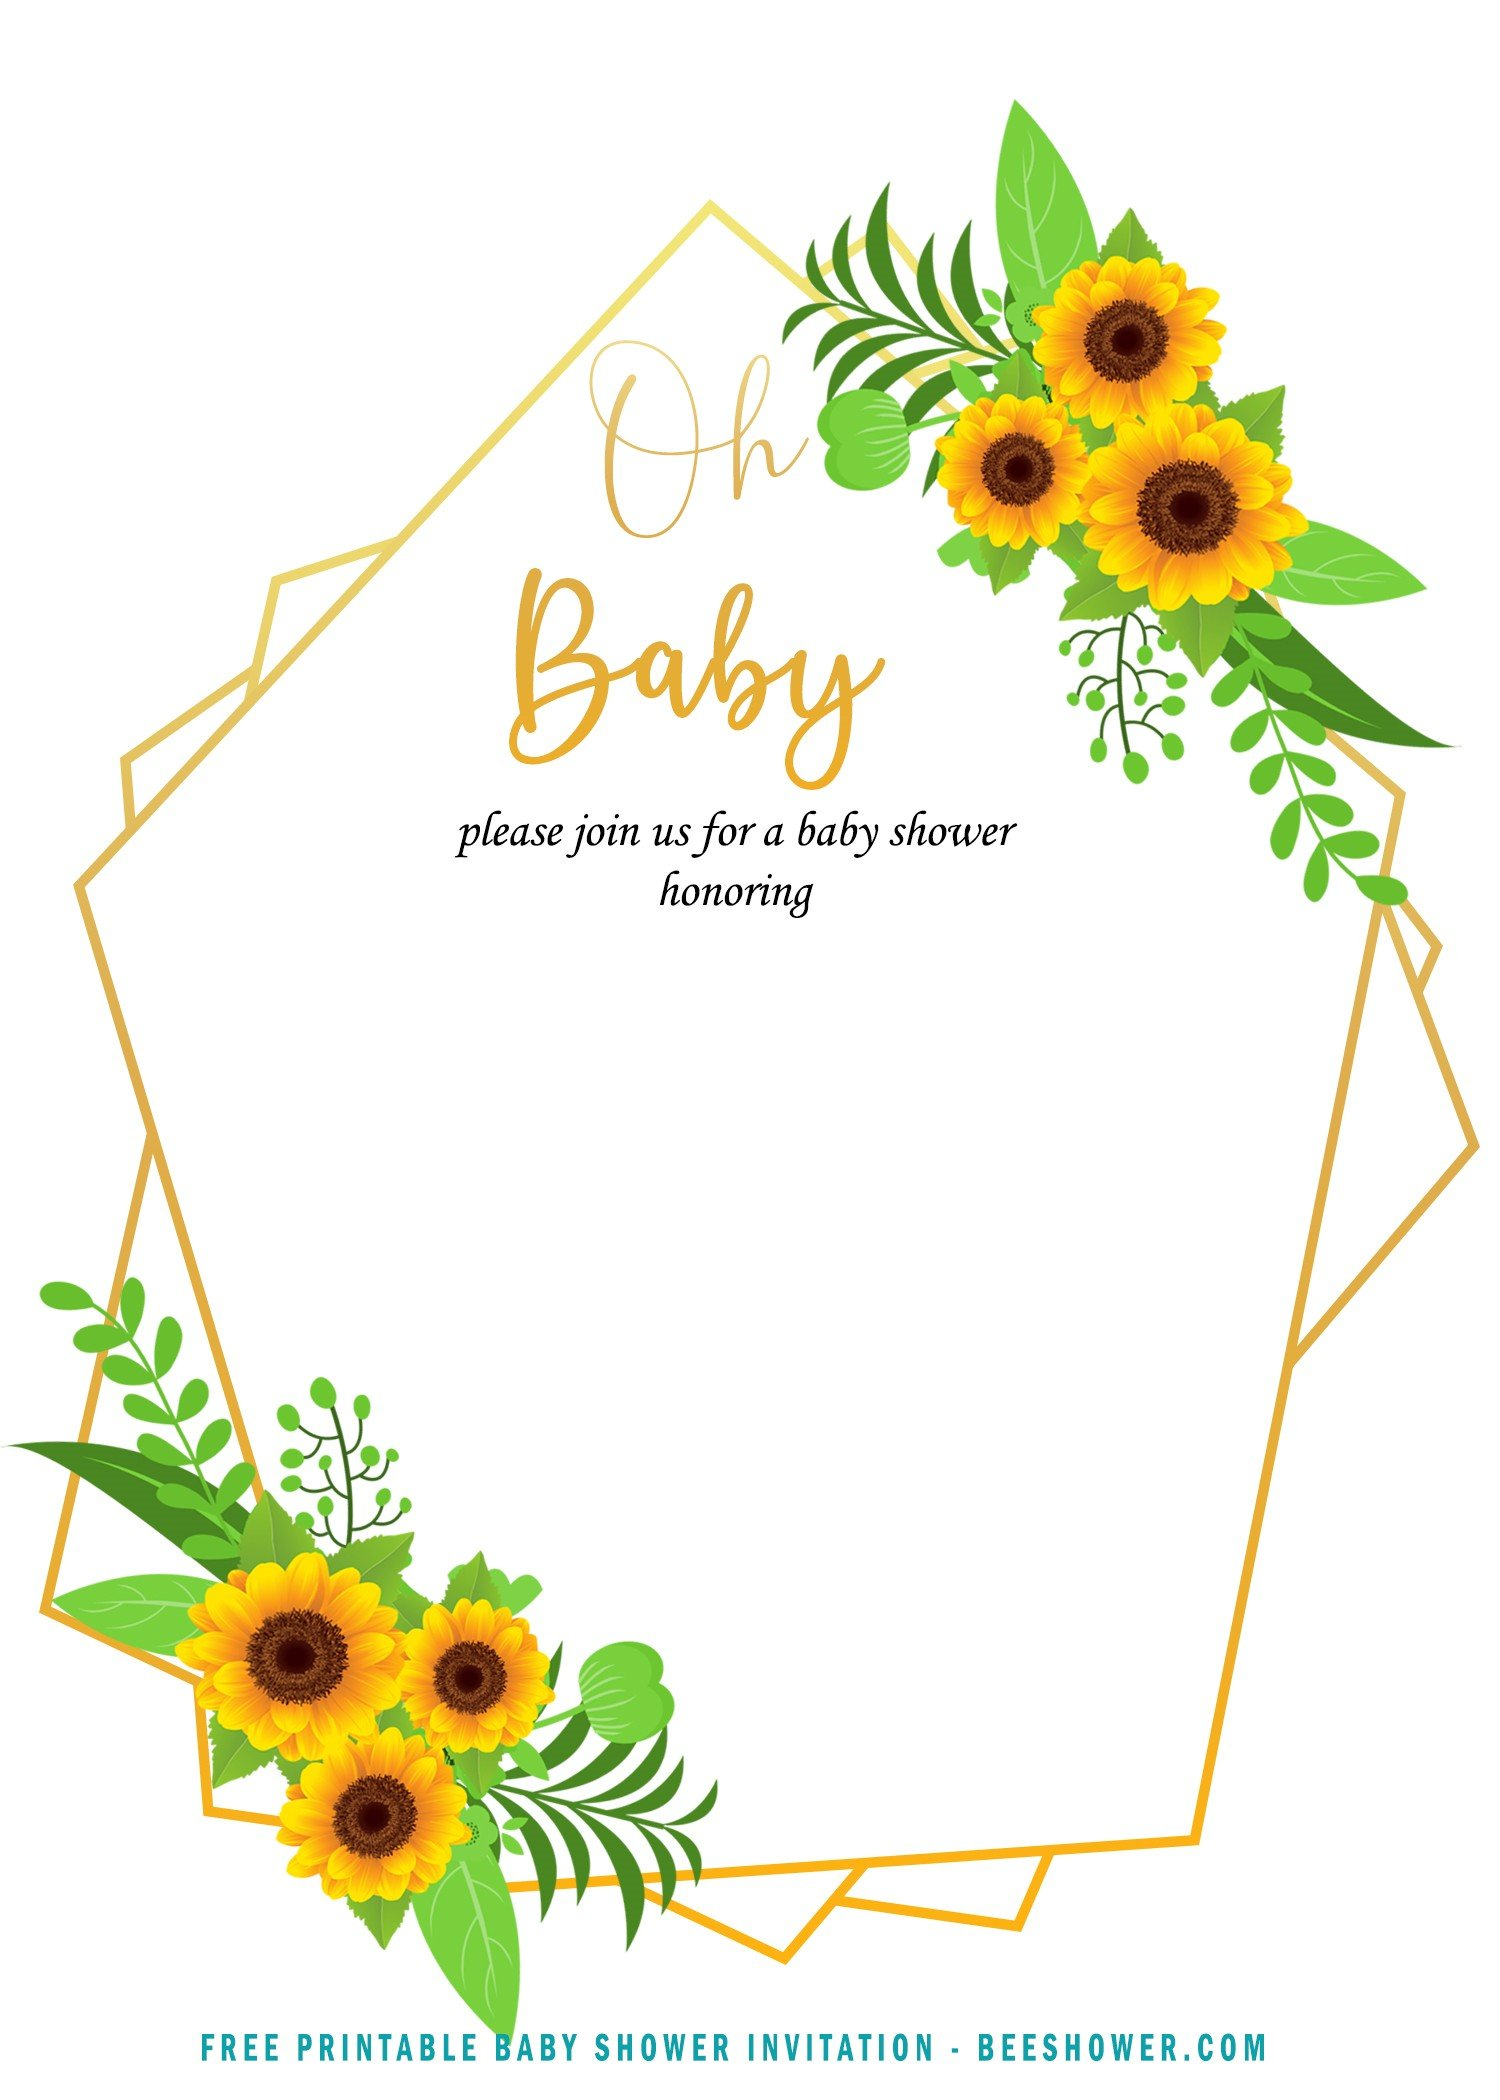 Free Printable Oh Baby Sunflower Invitation Templates